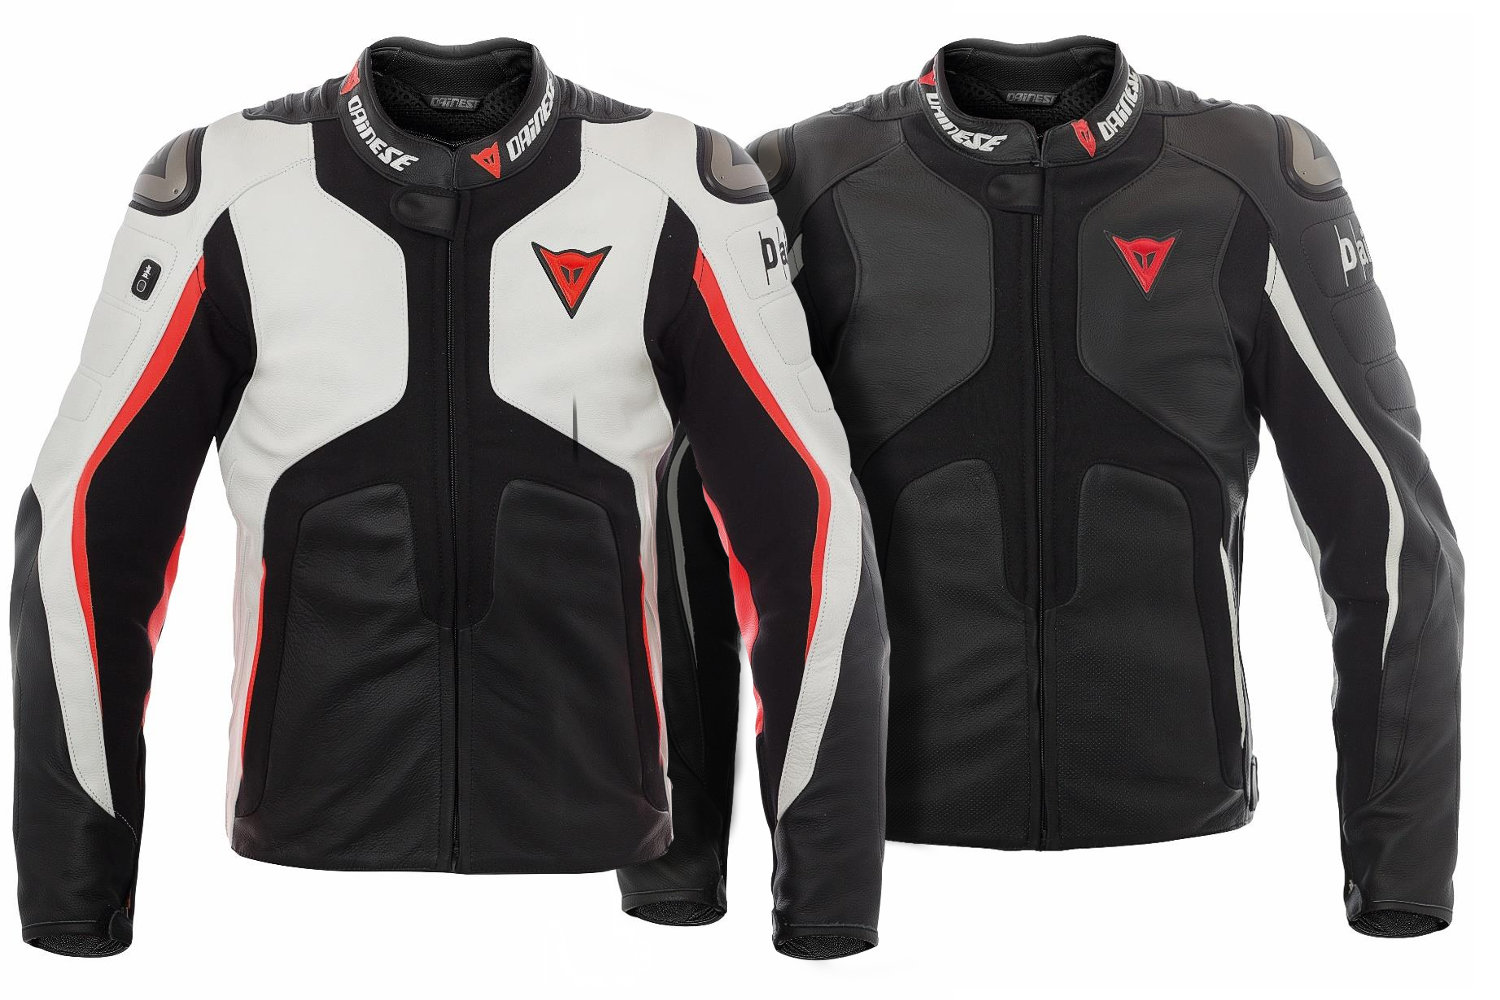 dainese d air misano 1000 le blouson moto airbag autonome. Black Bedroom Furniture Sets. Home Design Ideas